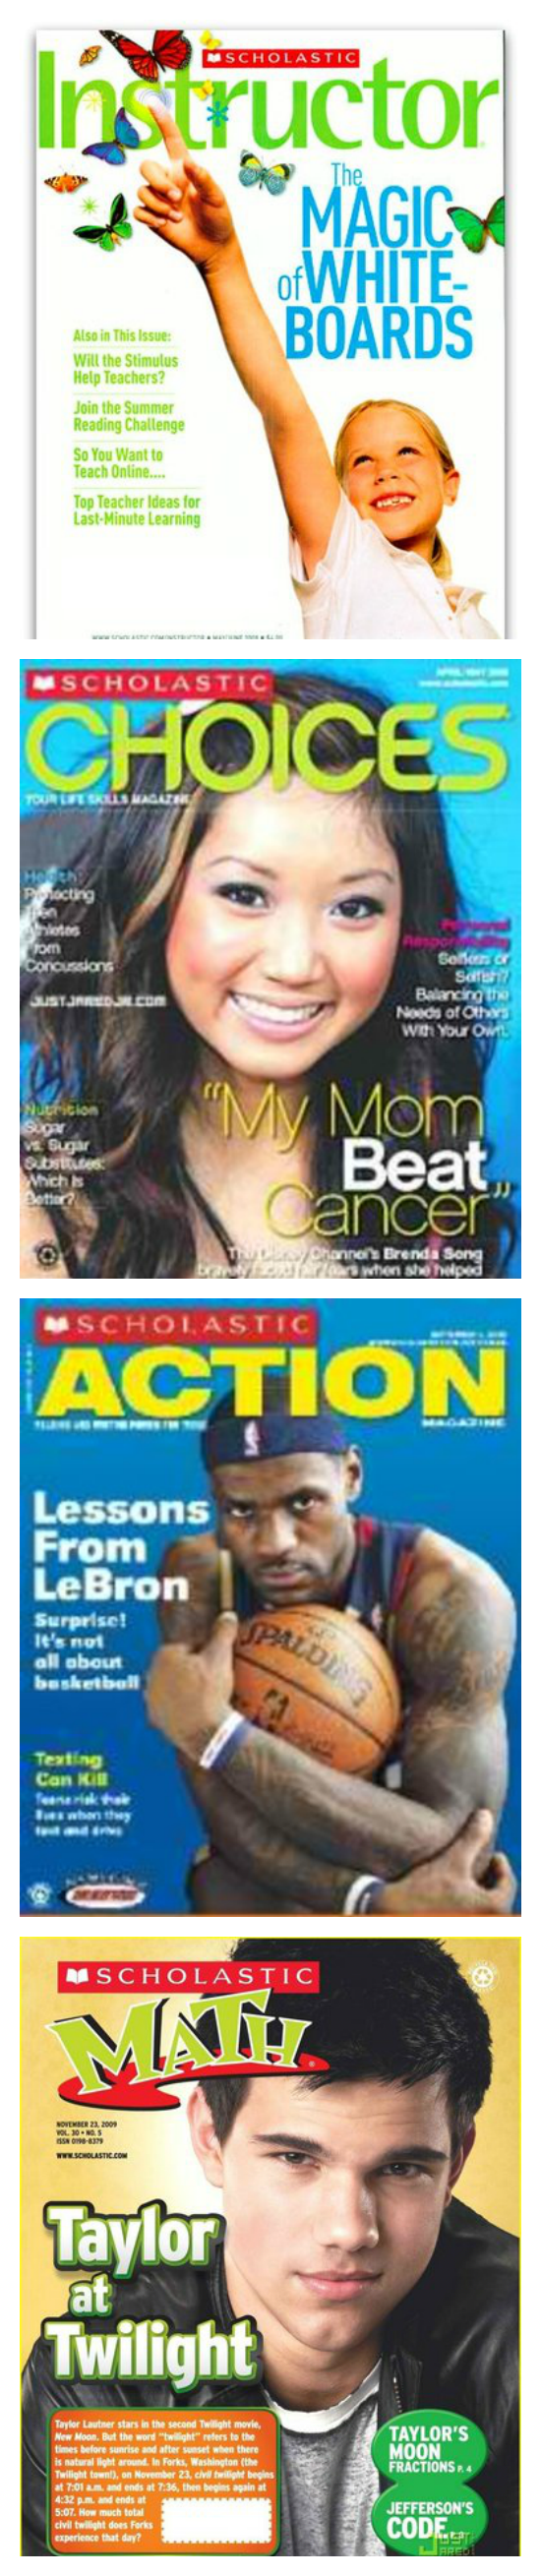 magazines for kids and family teachmama.com long scholastic